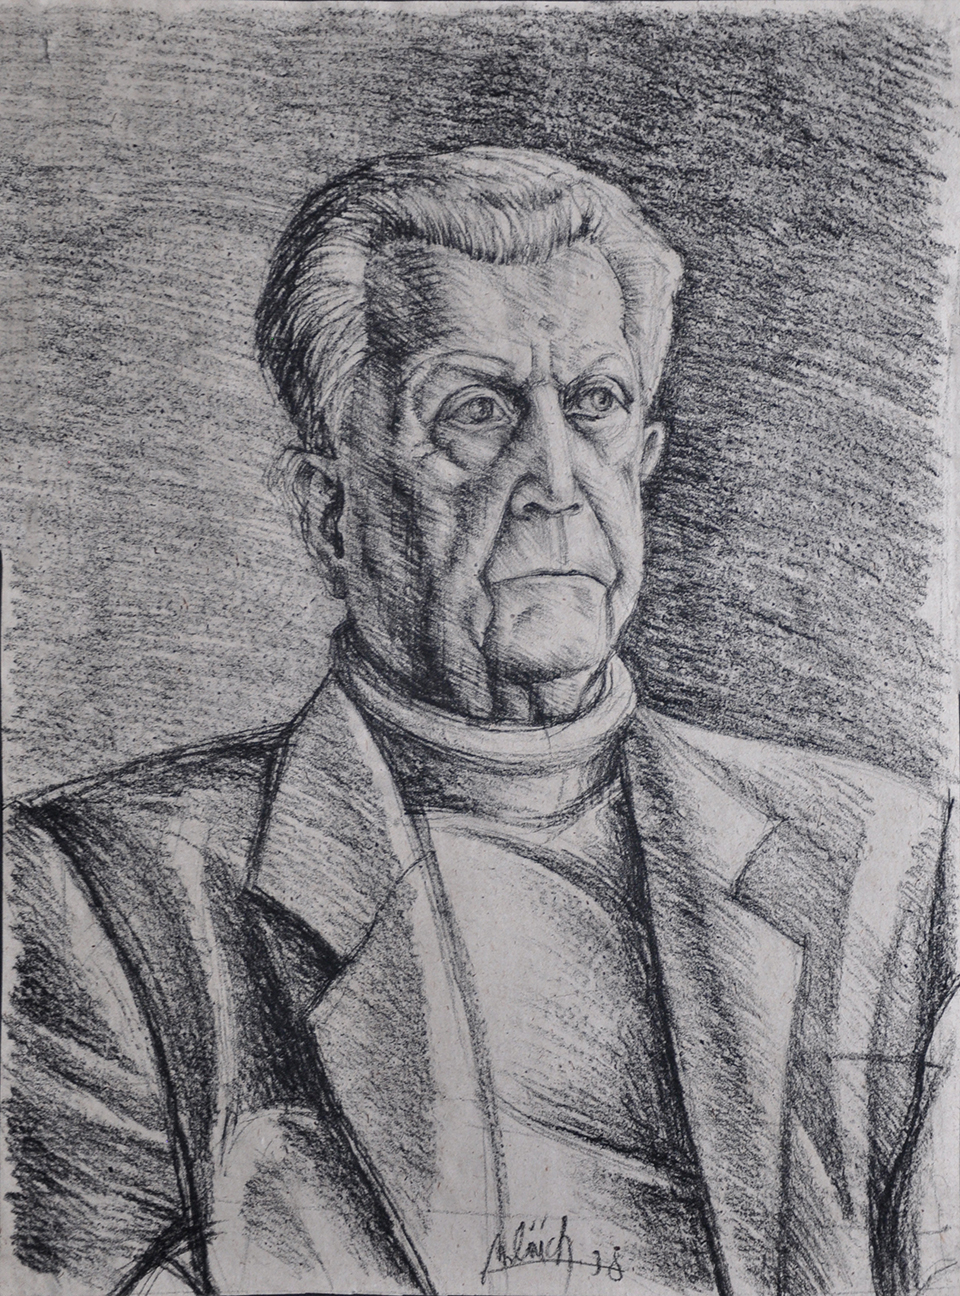 technique: charcoal dimensions: 42 x 30 cm year: 1998